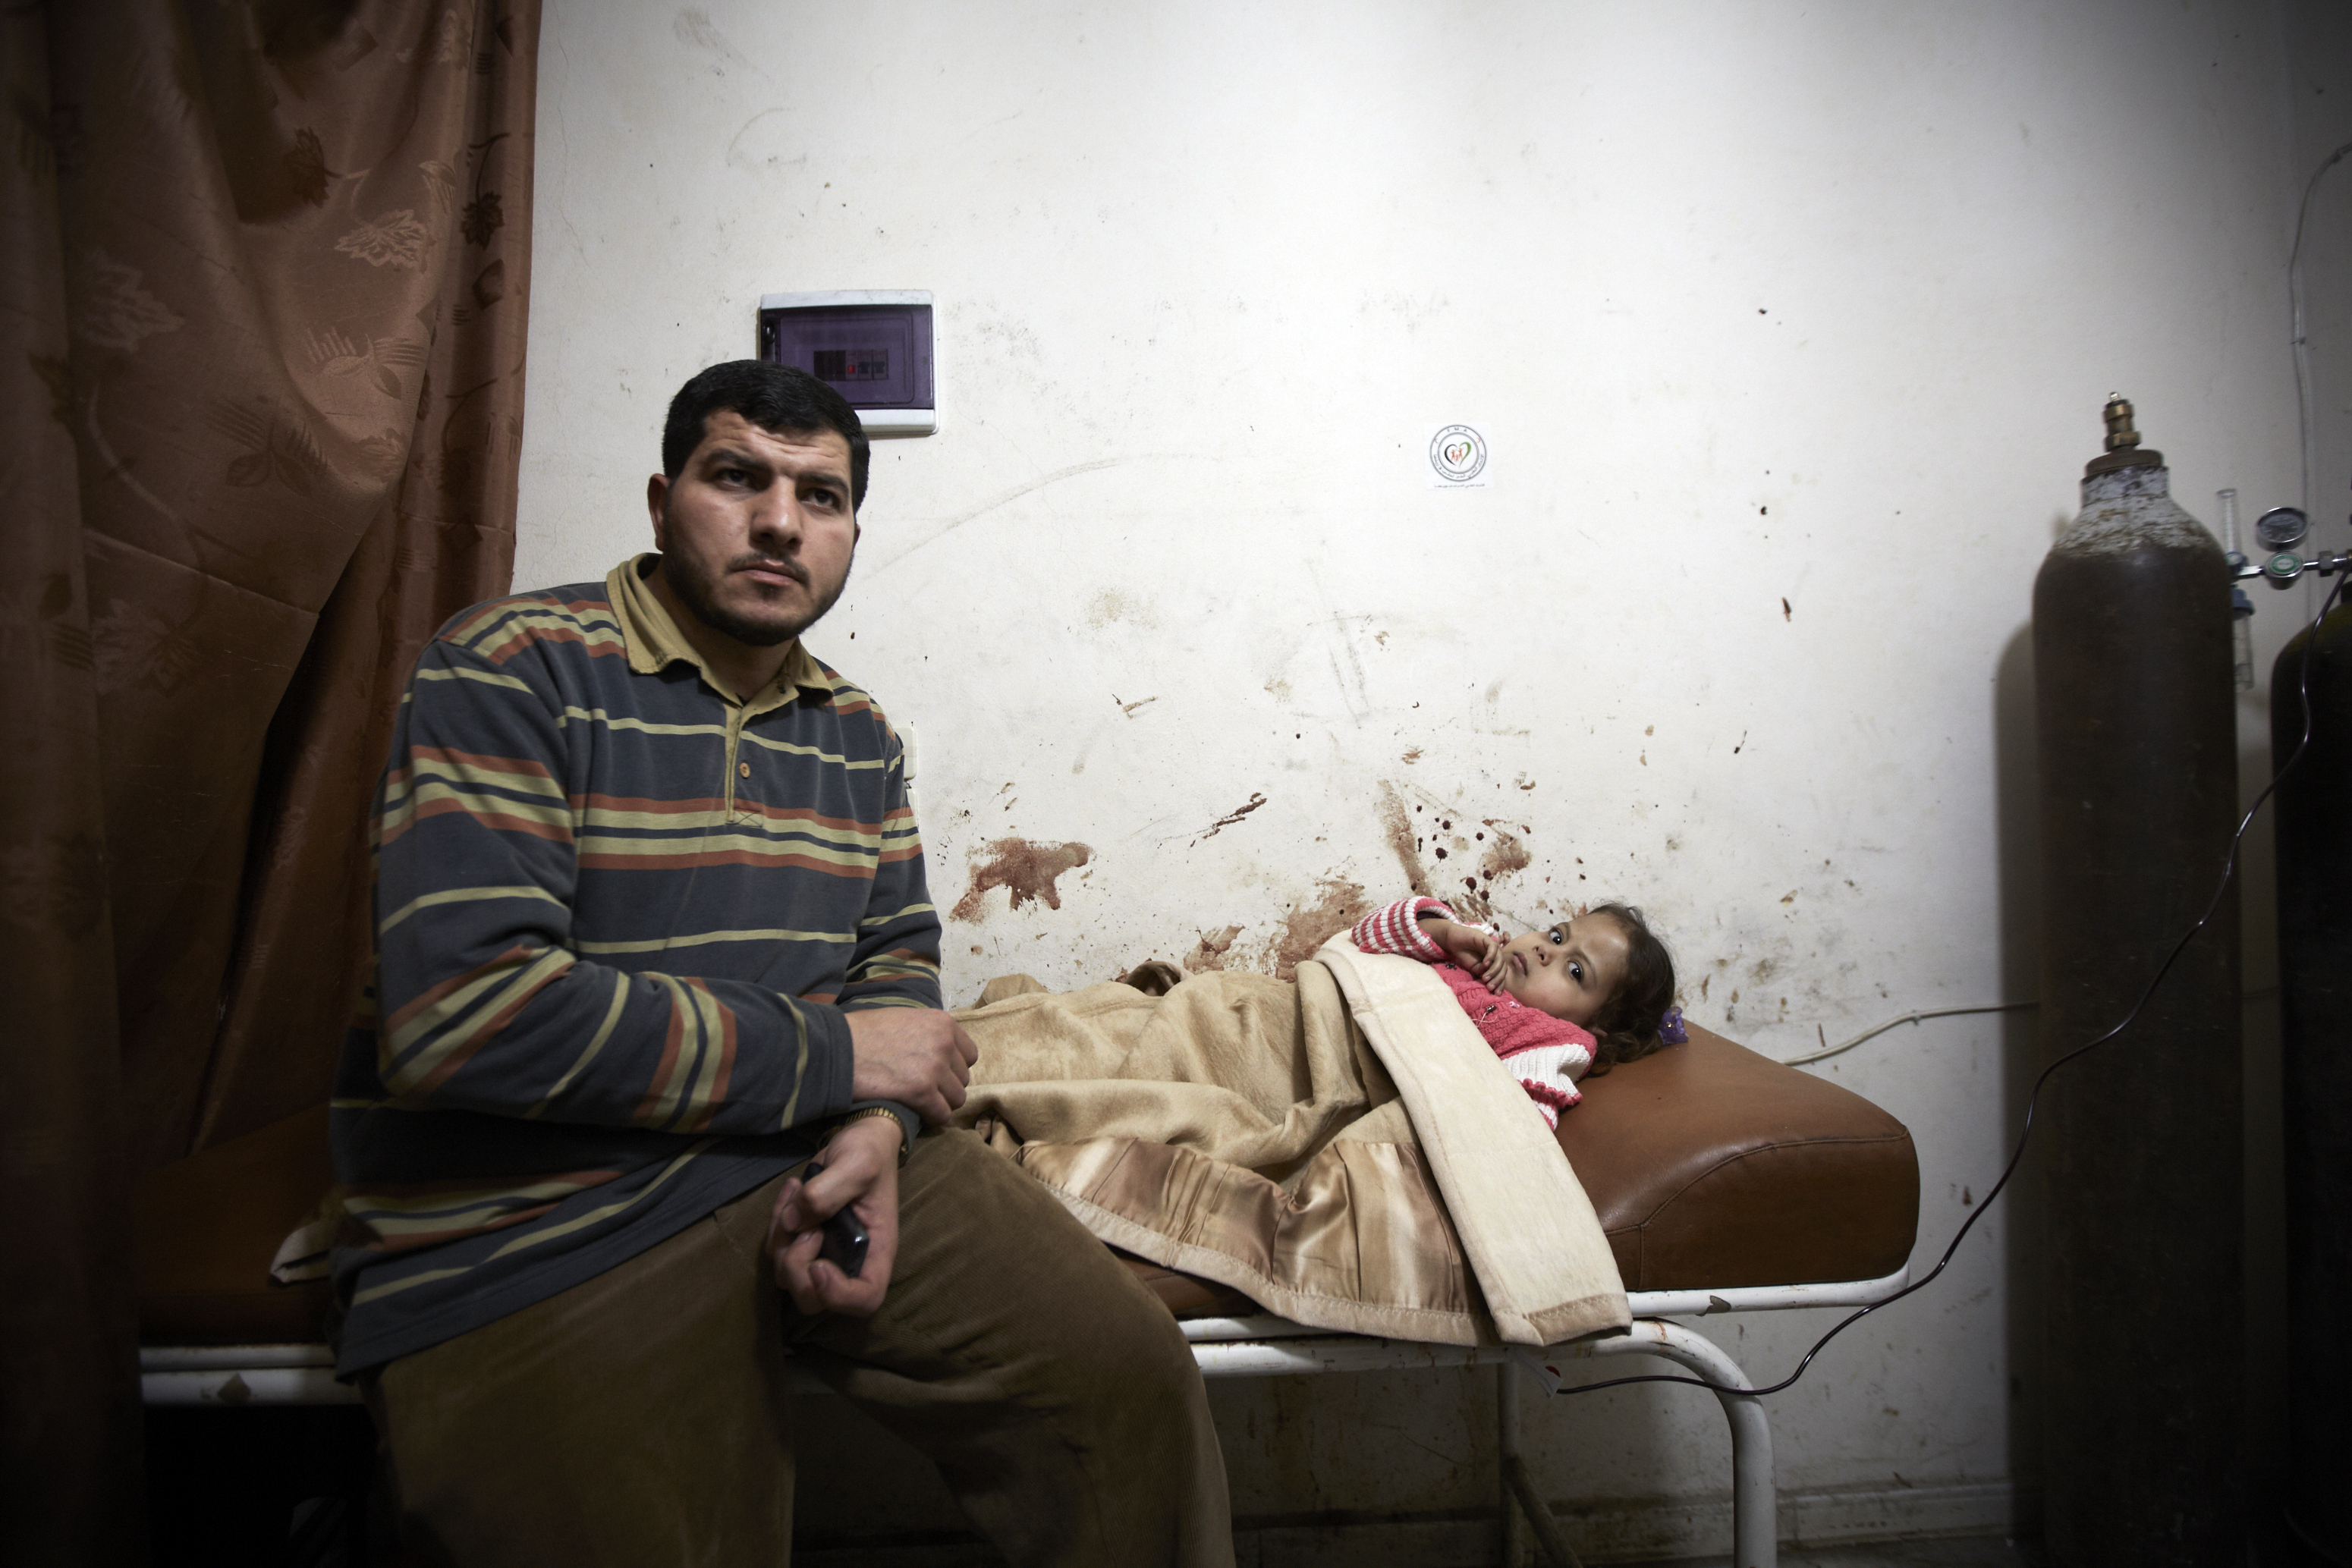 A wounded child is treated in a make shift hospital in Aleppo after her home was randomly targeted by the regime's artillery, on March 15, 2013.